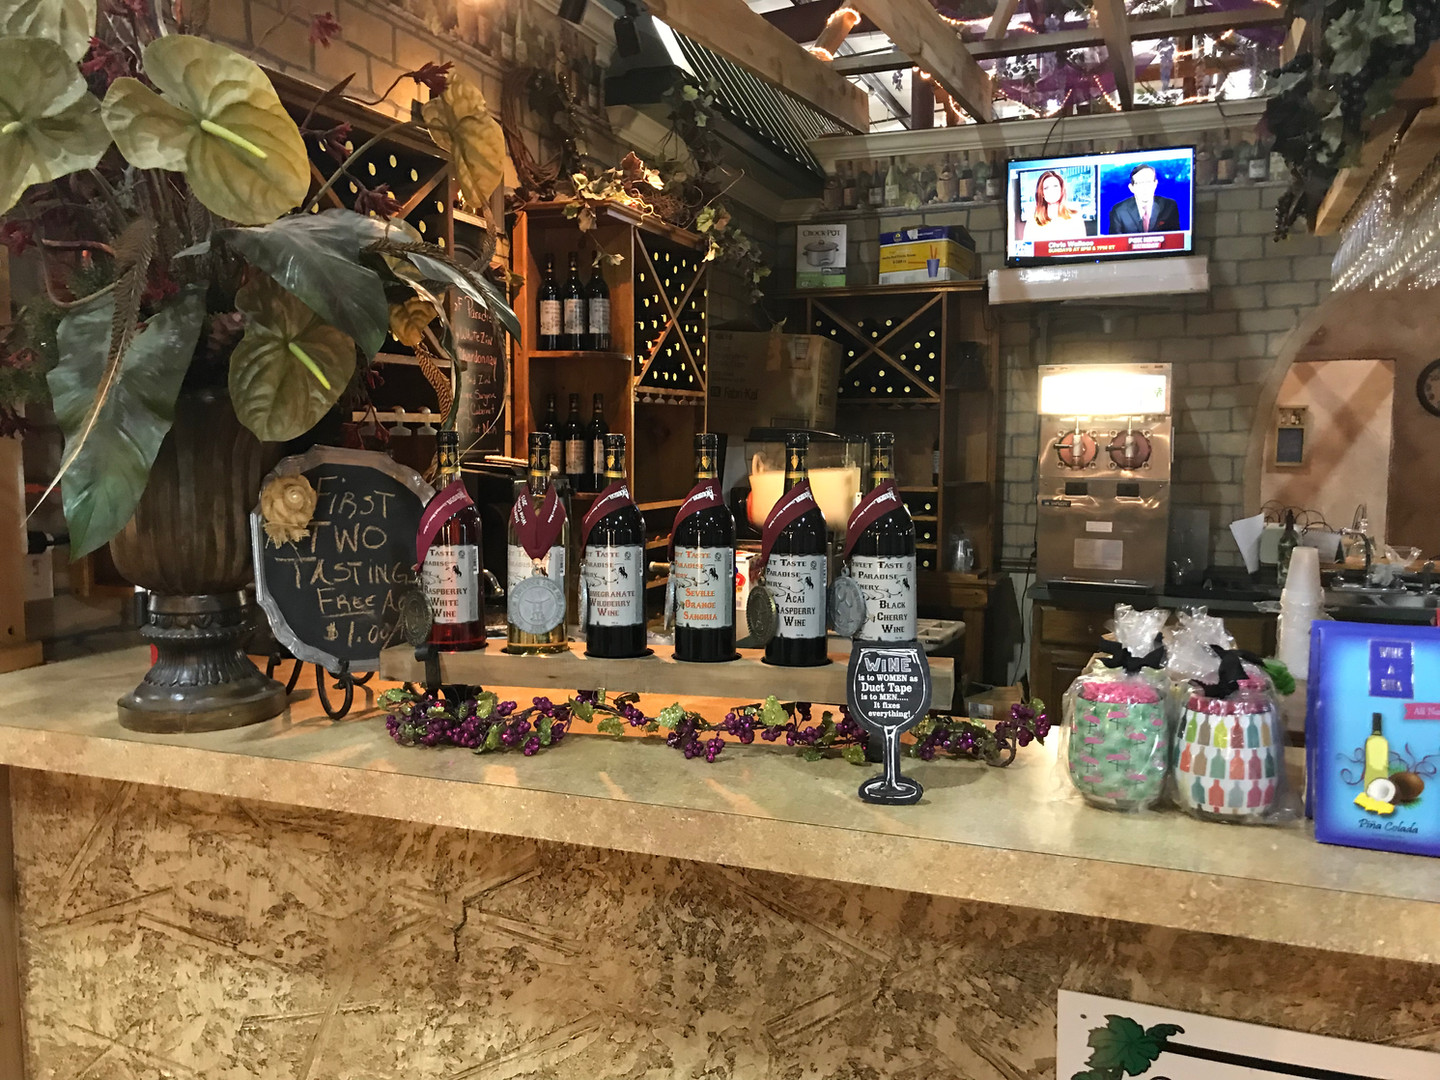 Sweet Taste of Winery Display